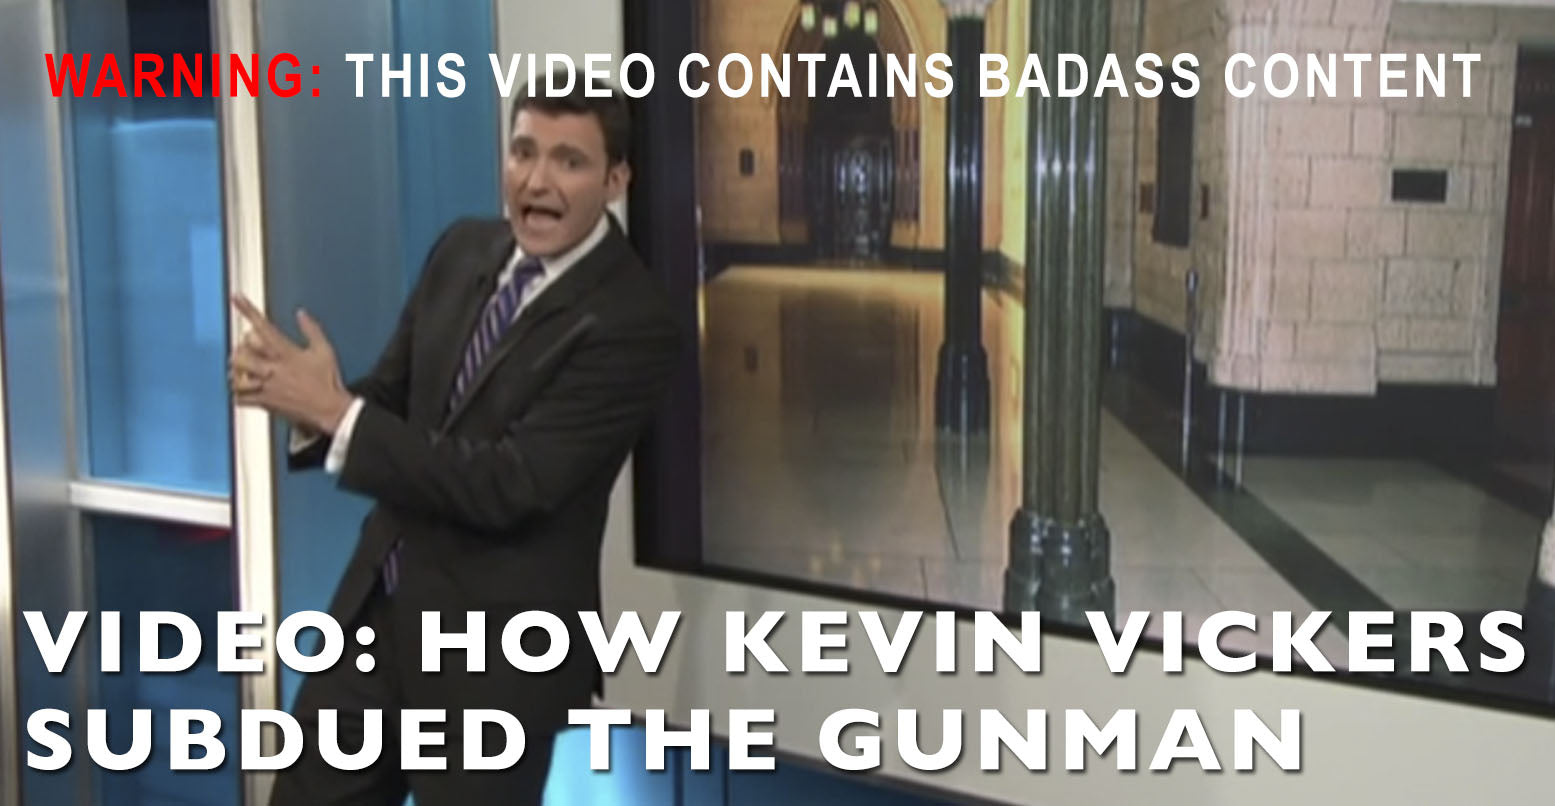 VIDEO: How Kevin Vickers Subdued The Gunman (WARNING: BADASS CONTENT)